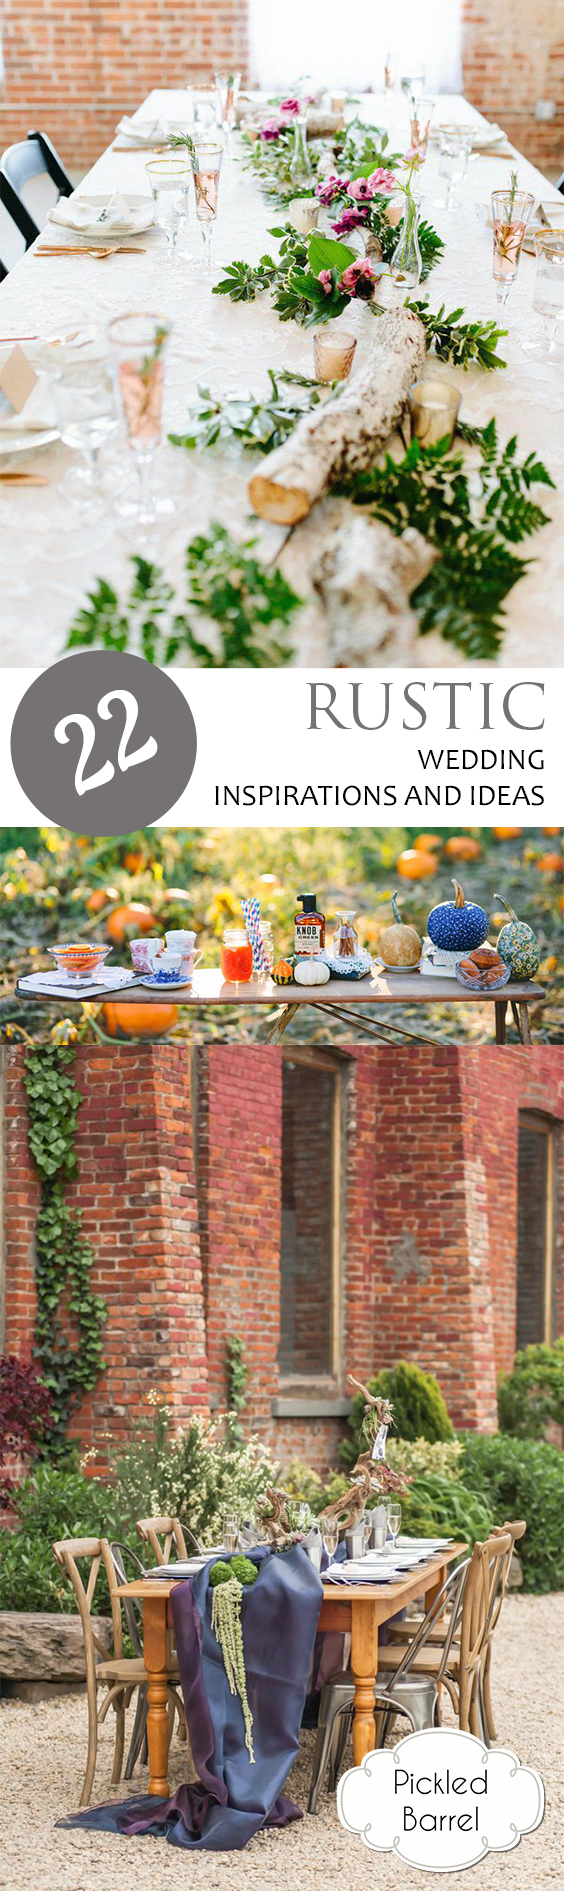 Rustic Wedding, Rustic Wedding Trends, Wedding Themes, Rustic Wedding Theme, DIY Rustic Wedding, Dream Wedding, DIY Weddings, Popular Pin